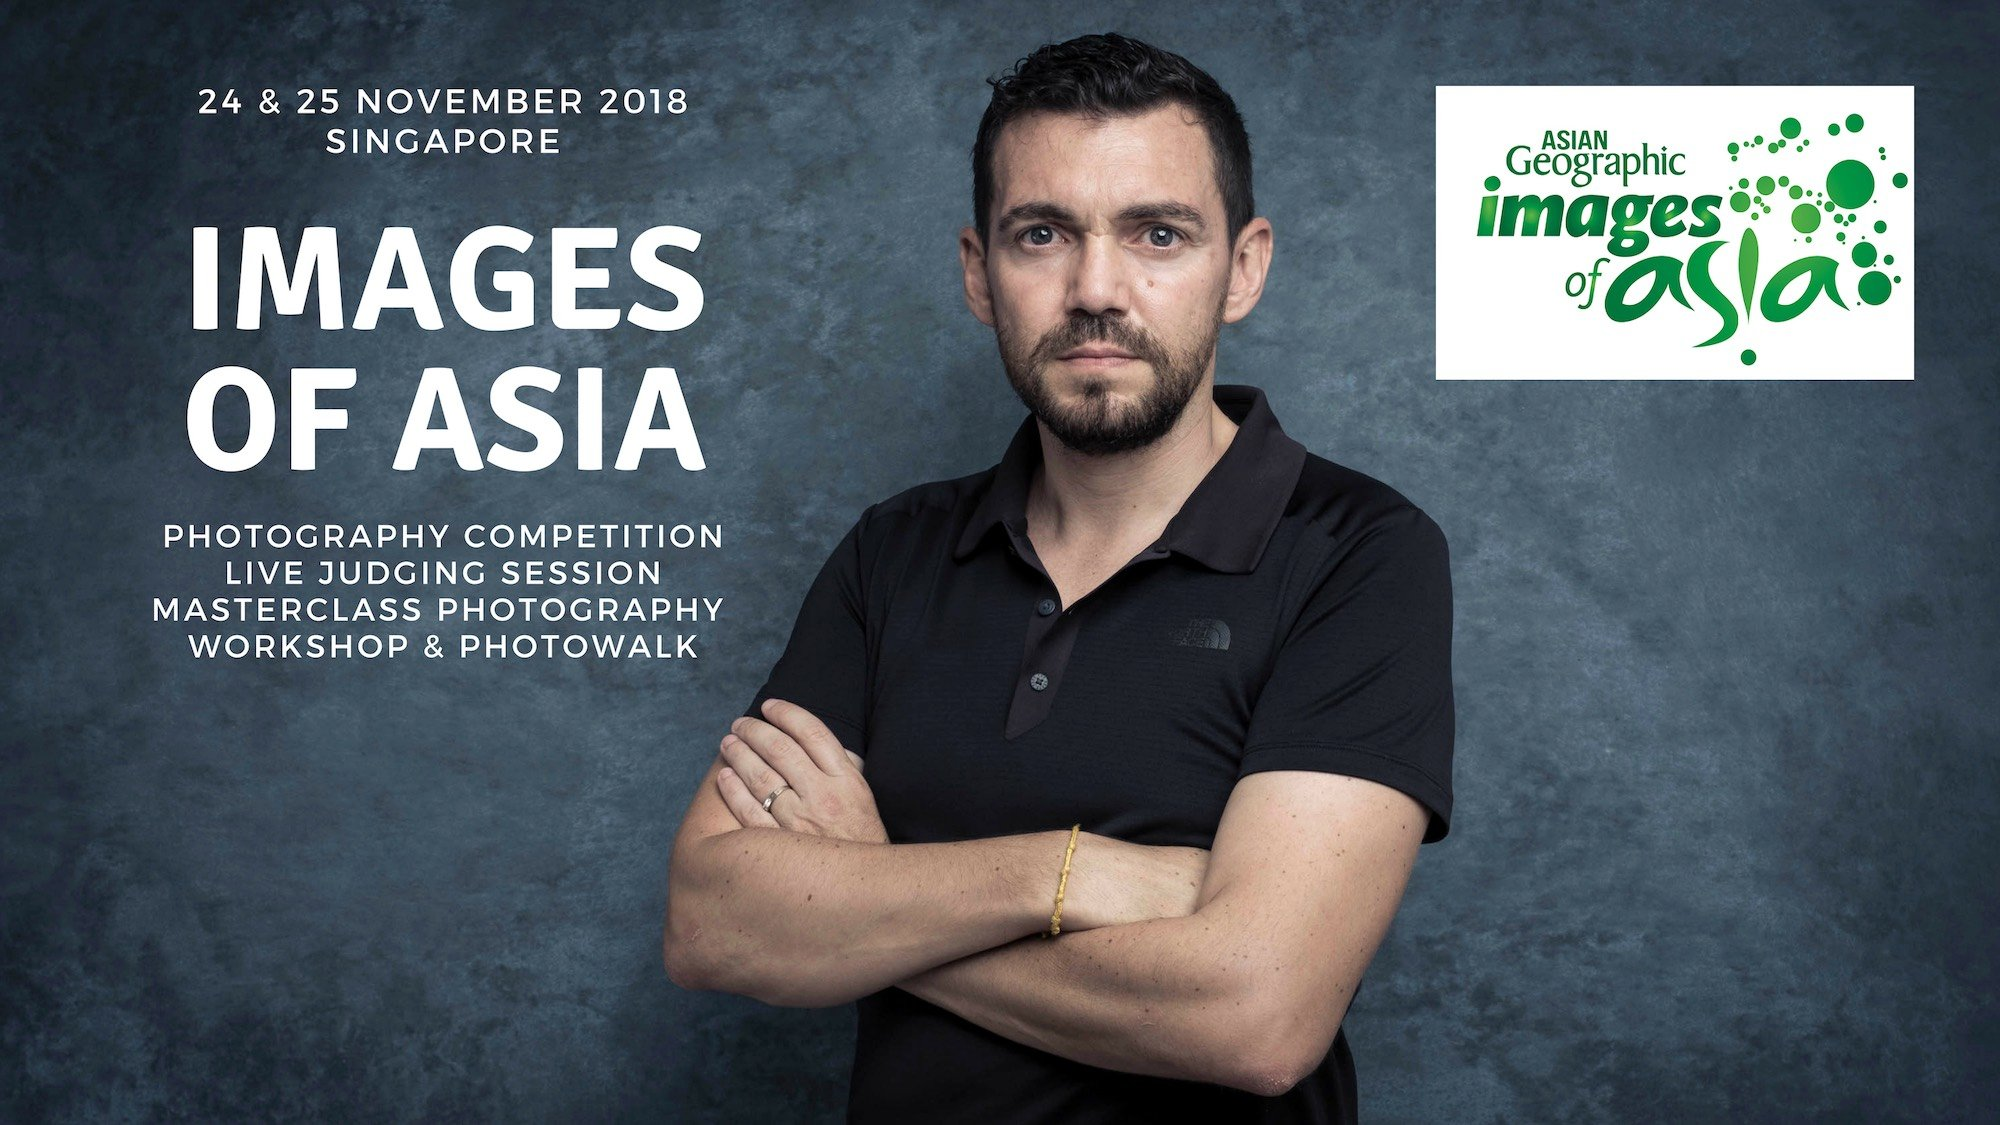 Video: Asian Geographic – Images of Asia Masterclasses Photography Workshop  & Photowalk Singapore